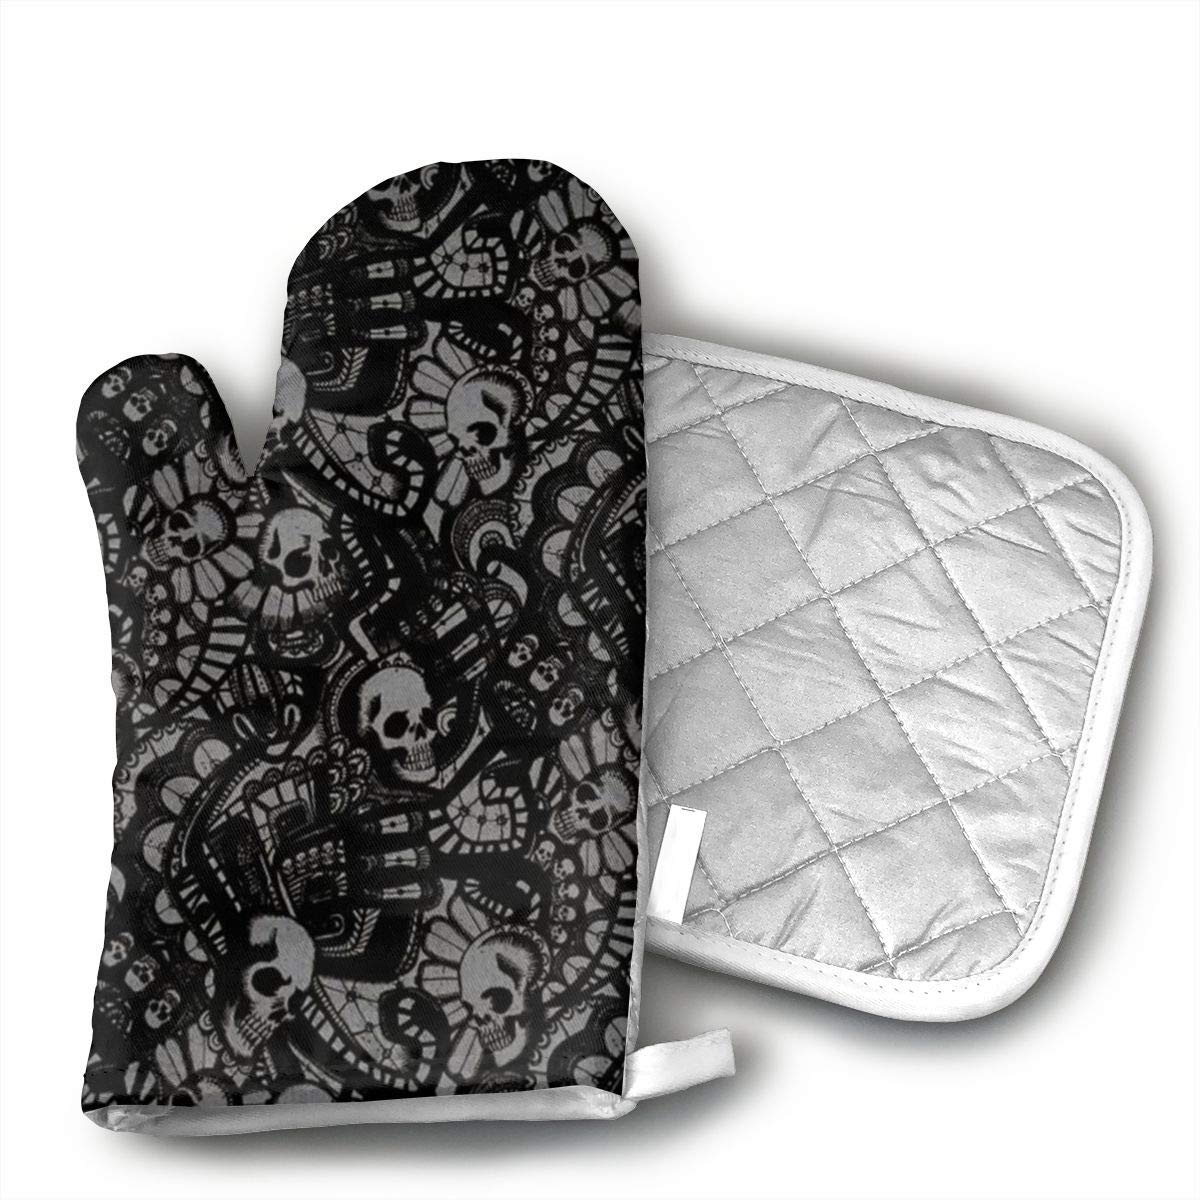 GRSTfsm Scary Skull Horror Oven Mitts, Cook Mittens Protect Your Hand During Baking Doing BBQ